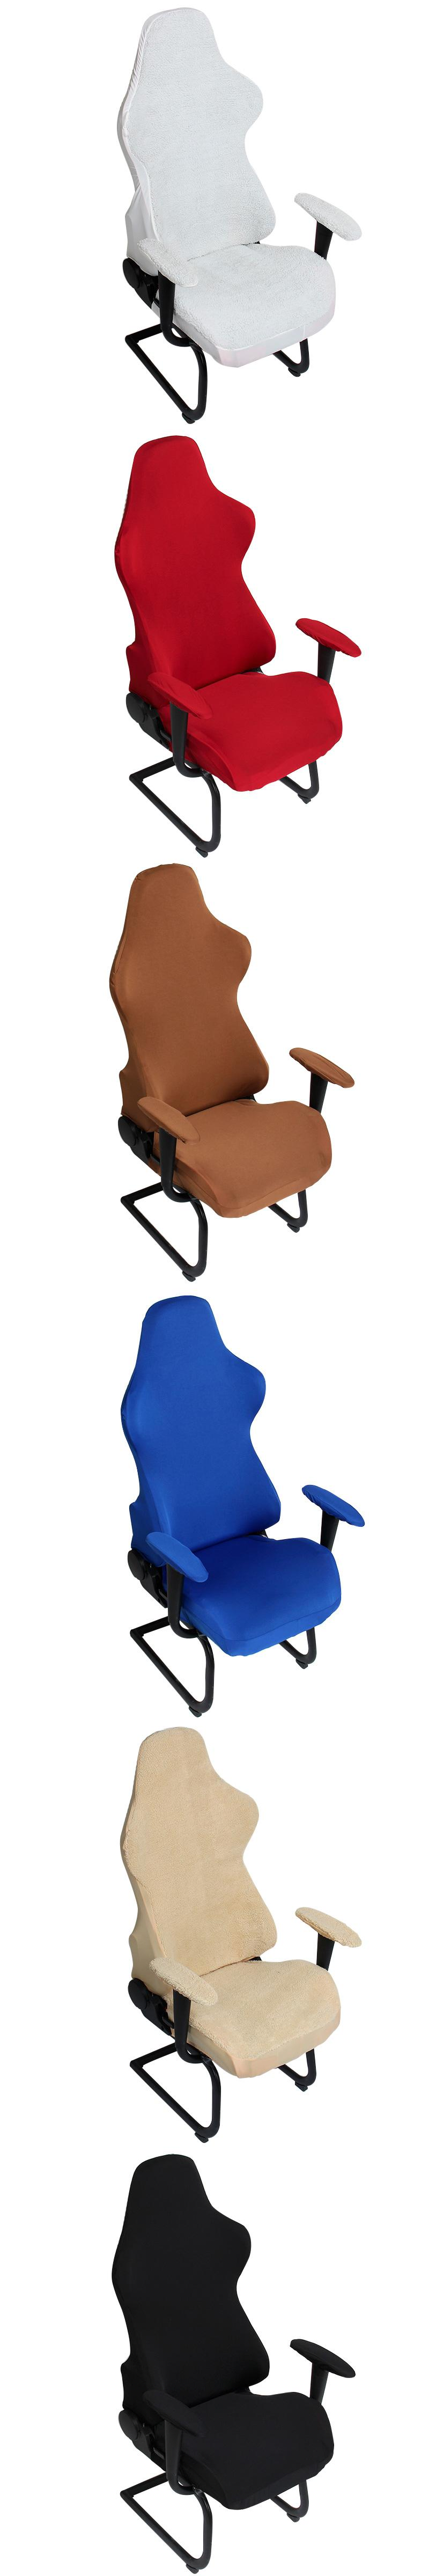 Hot Selling fice Chair Covers Spandex Seat Covers for puter